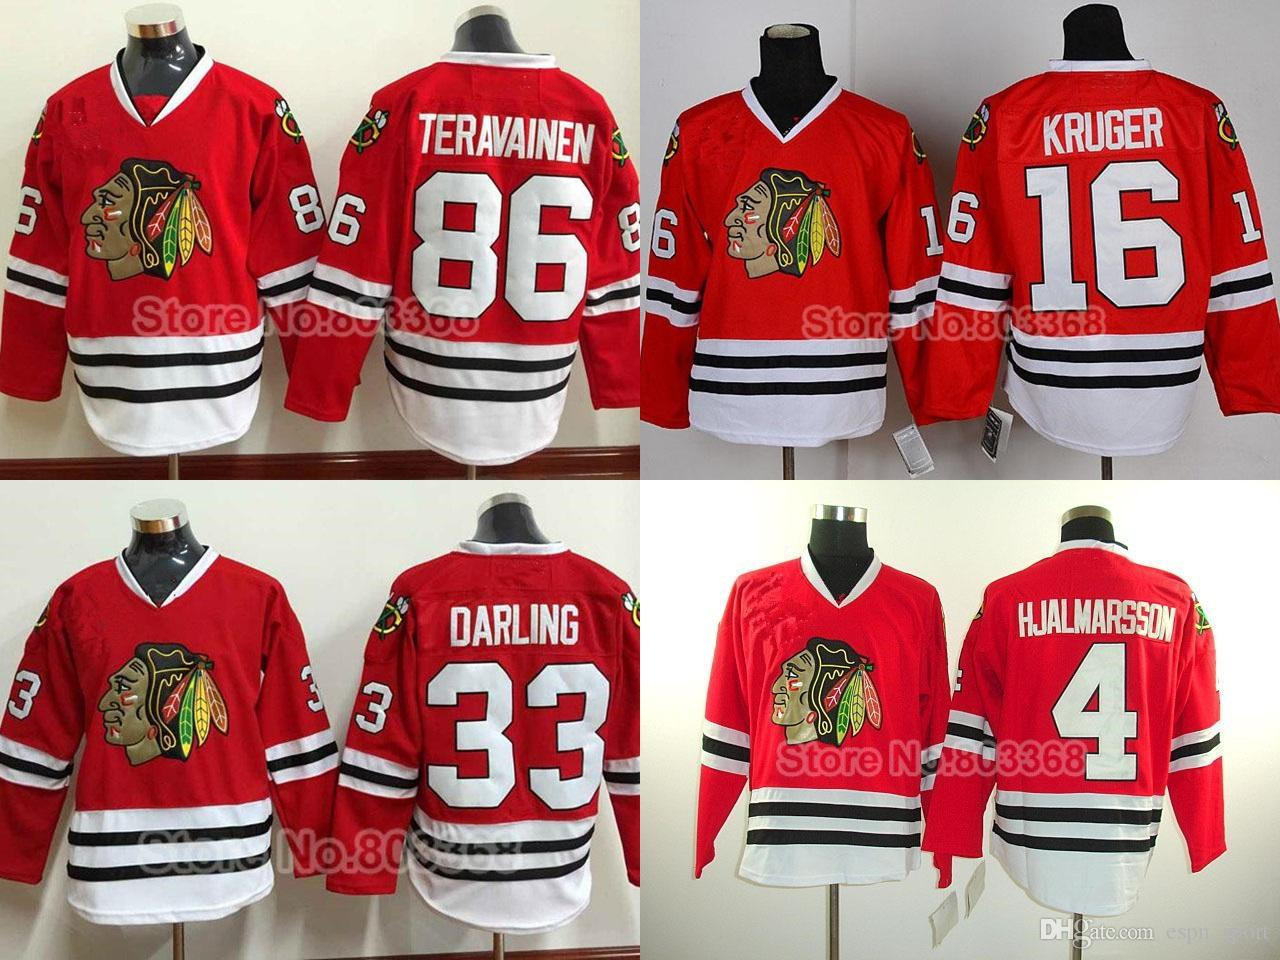 new product 38942 23508 Factory Outlet, 2015 Stanley Cup Champions Chicago Blackhawks Jersey  Red/Black/White Jerseys With Patch,Numbers And Name Are Sewn On